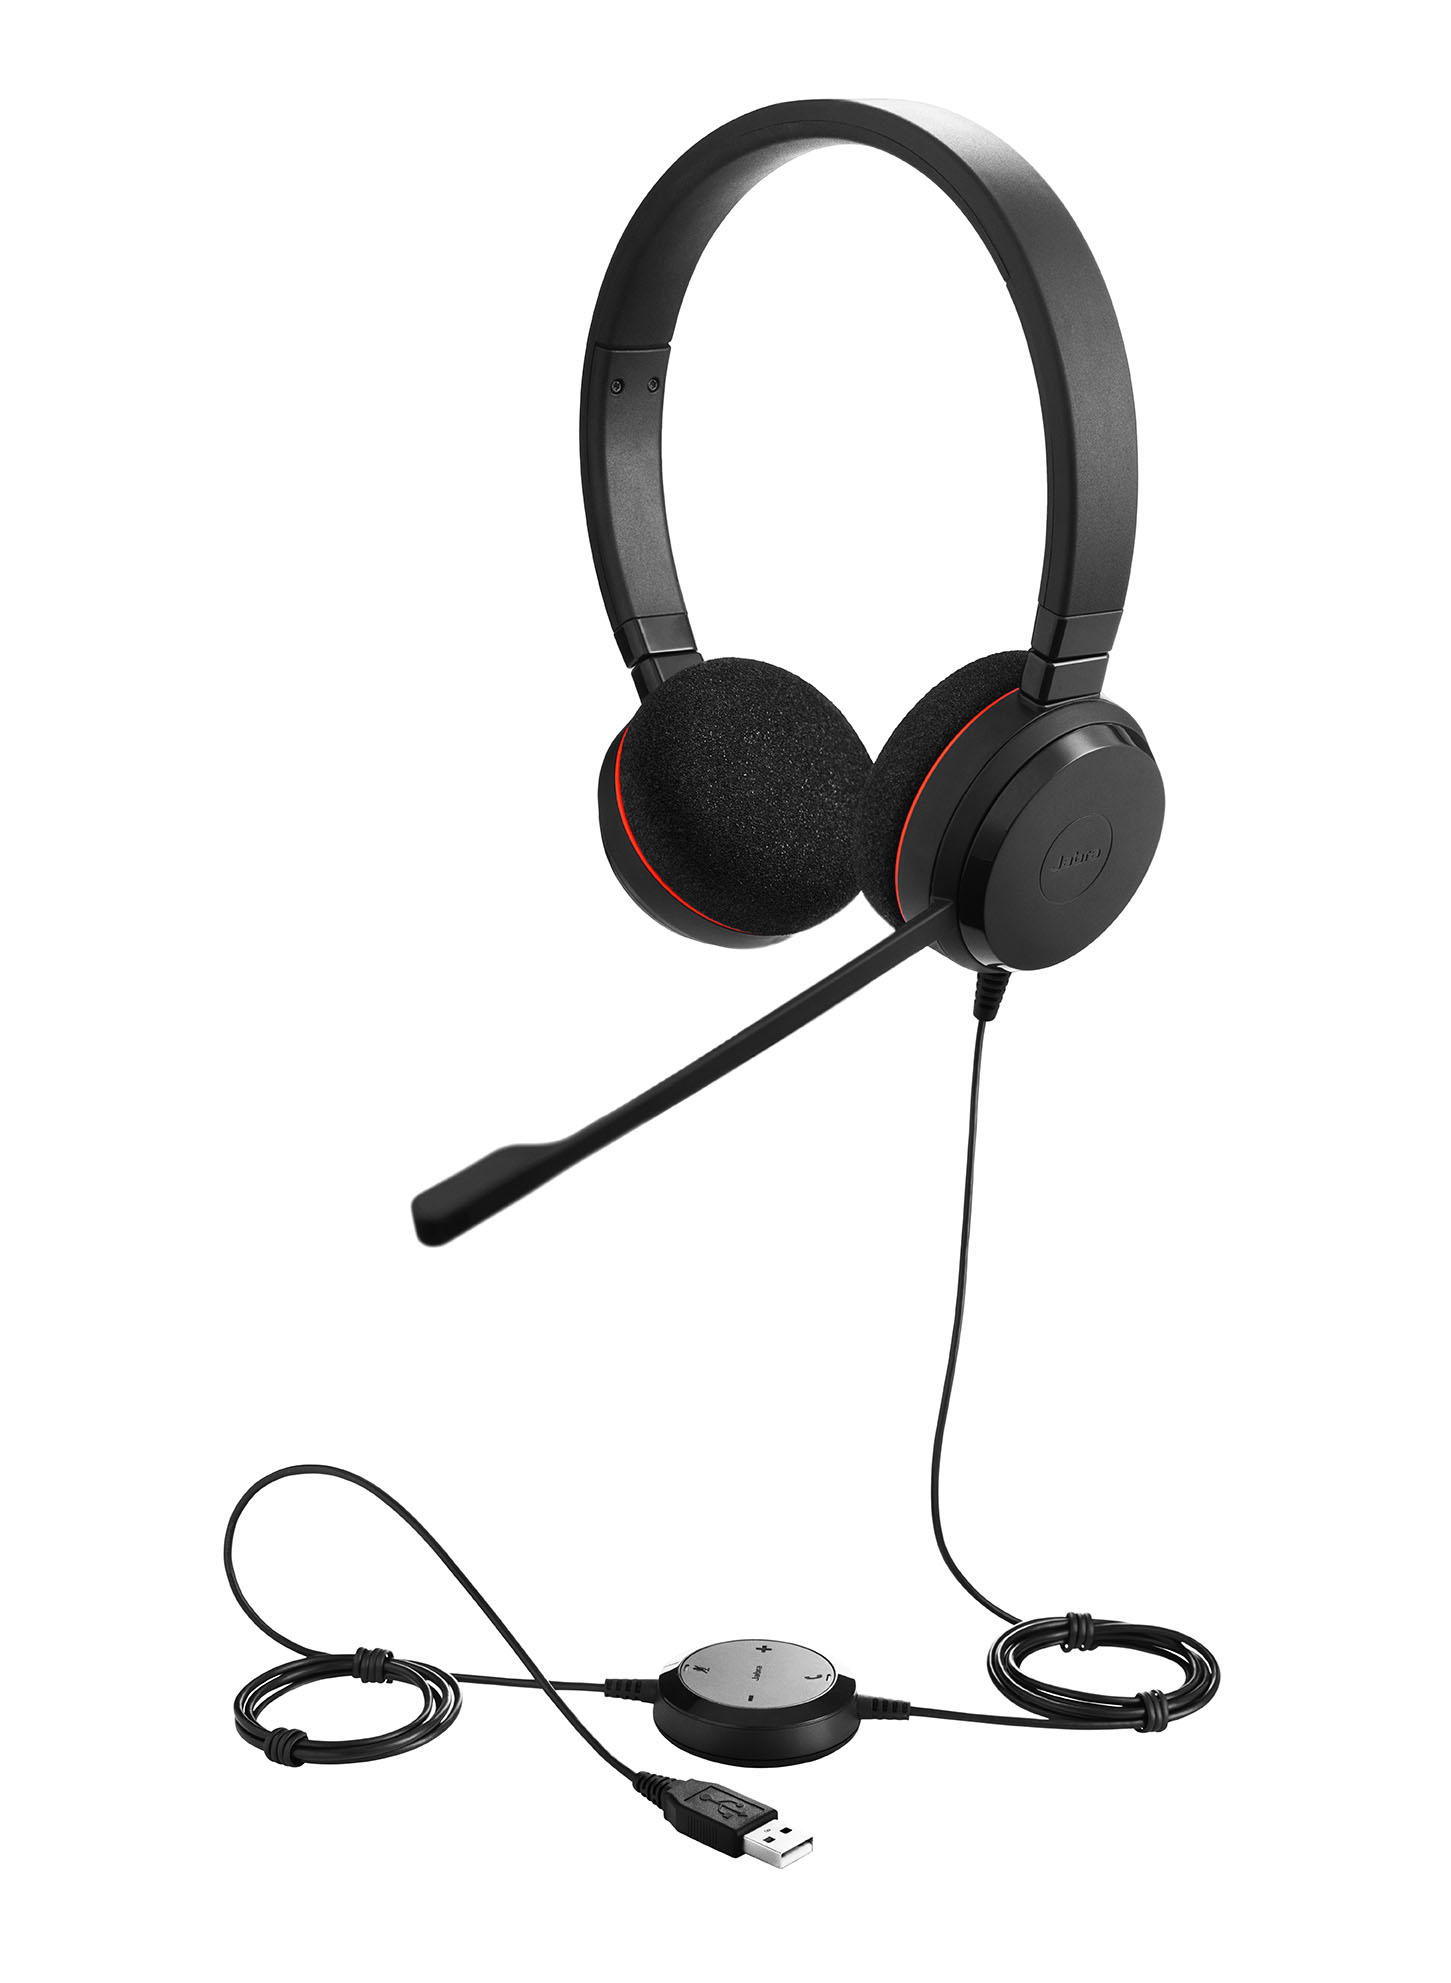 Evolve bluetooth гарнитура jabra motion uc ms 6630 900 301 серый 6630 900 301